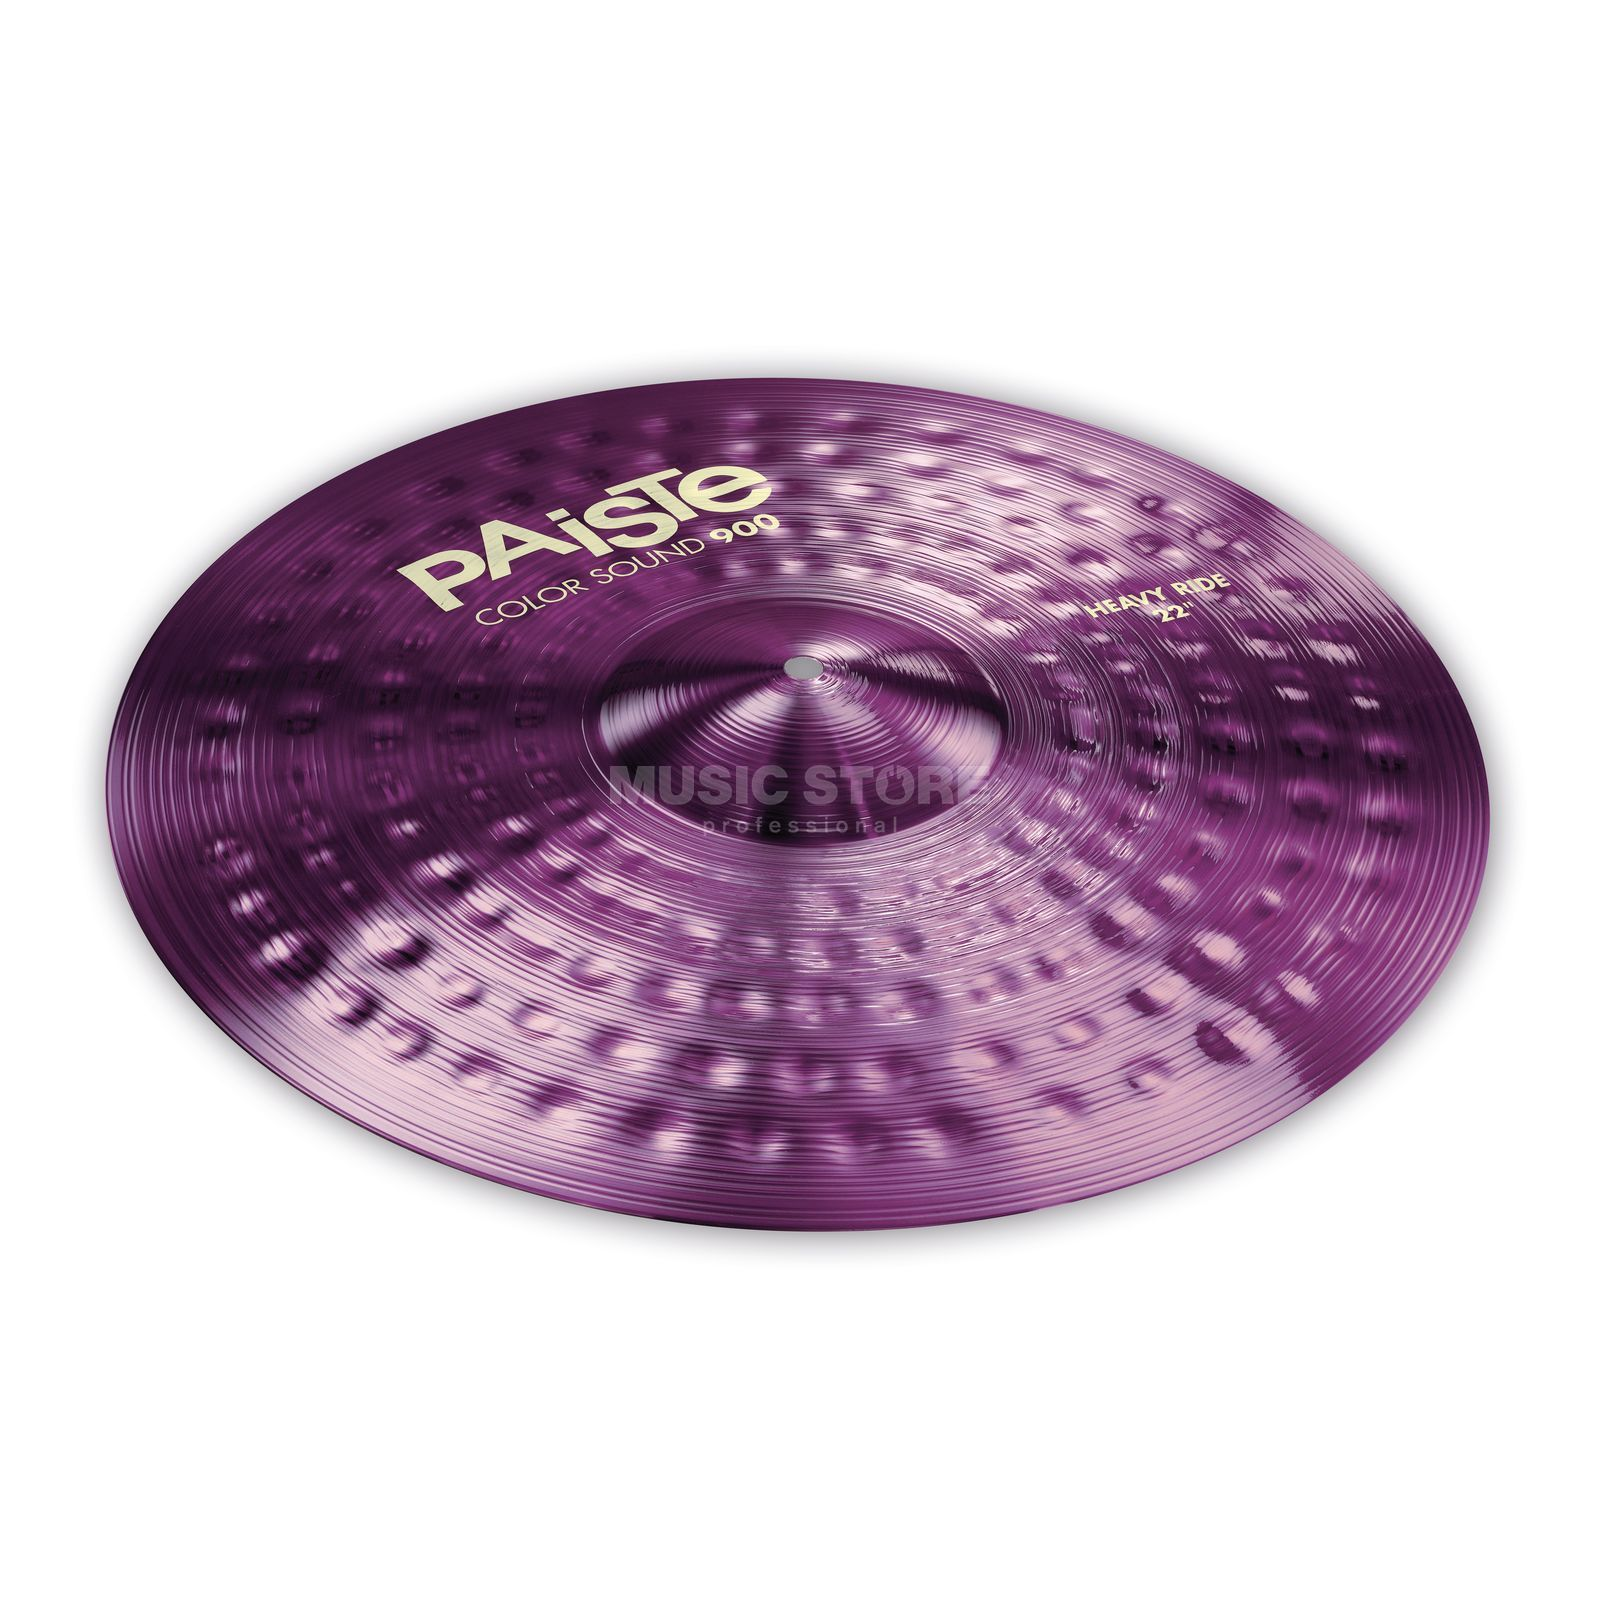 "Paiste CS 900 Heavy Ride 22"" Color Sound Purple Εικόνα προιόντος"